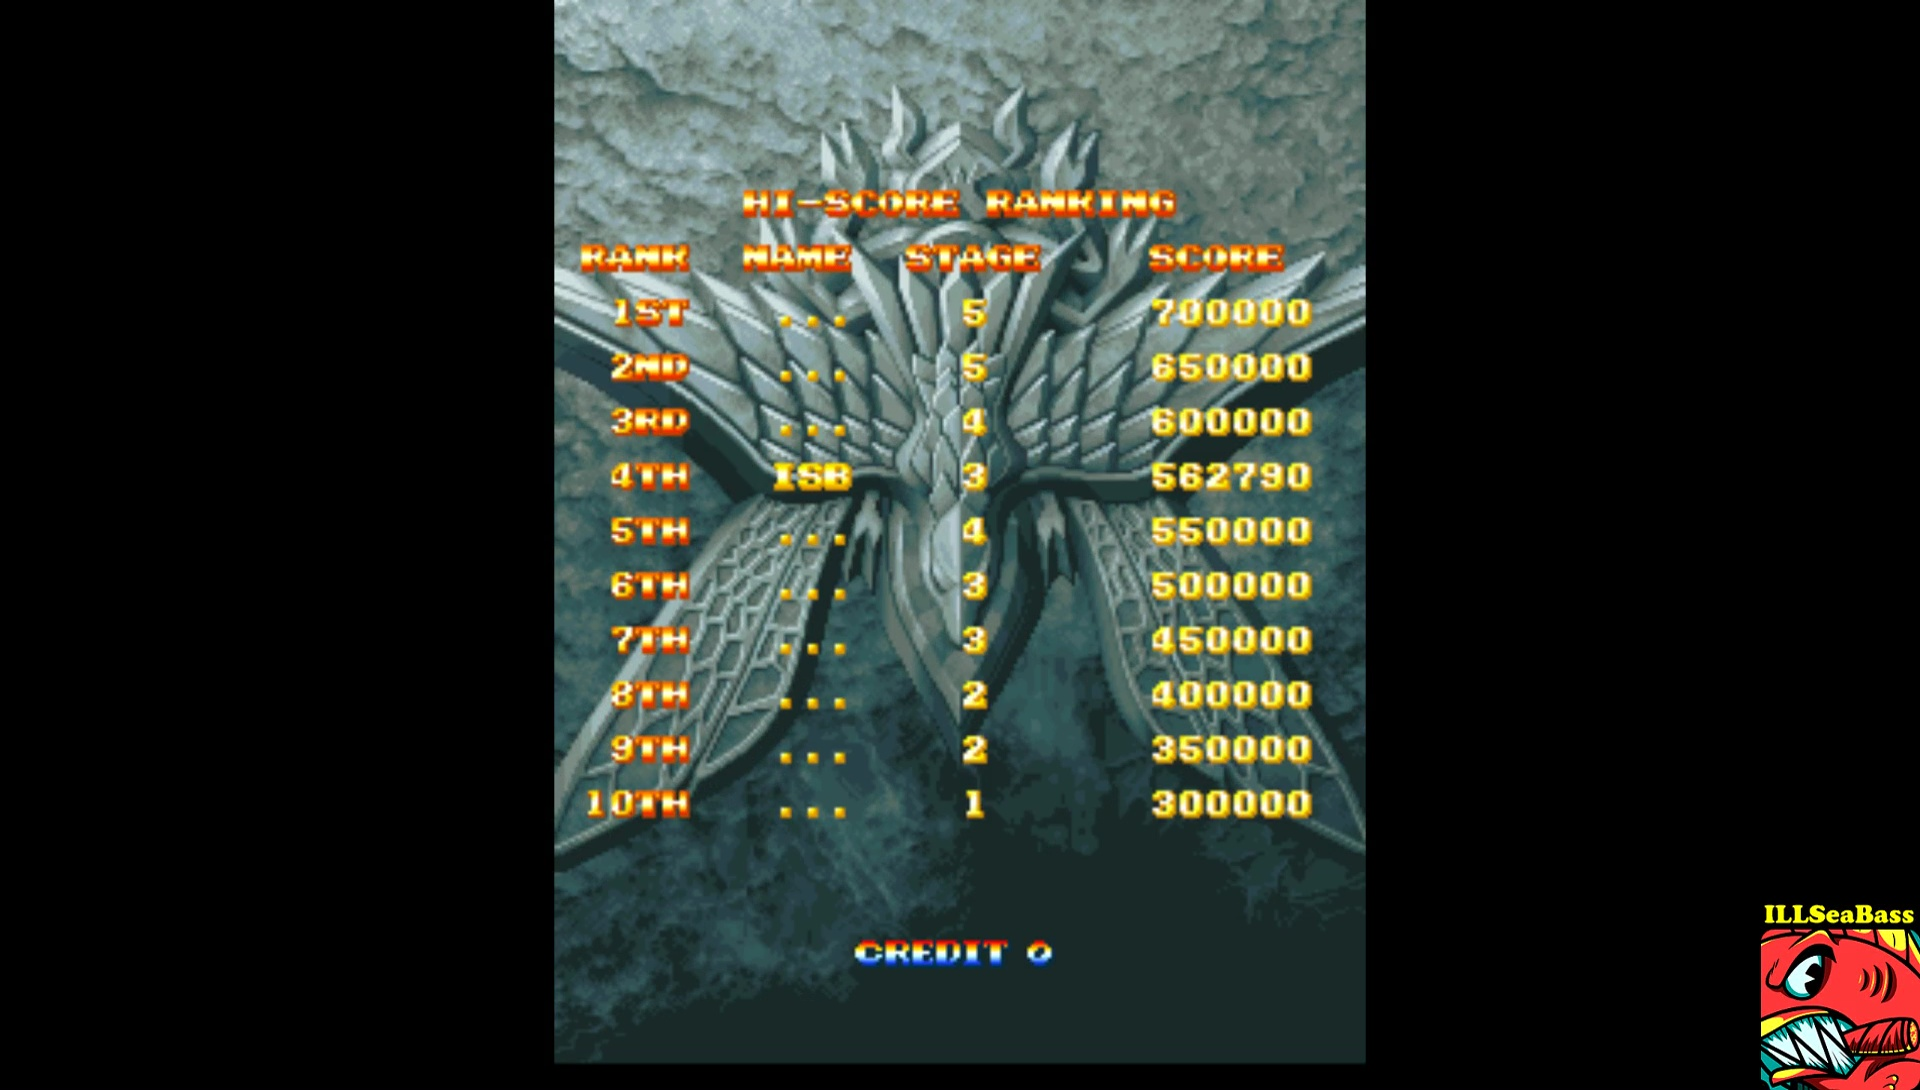 ILLSeaBass: Air Gallet [agallet] (Arcade Emulated / M.A.M.E.) 562,790 points on 2017-07-15 20:17:09